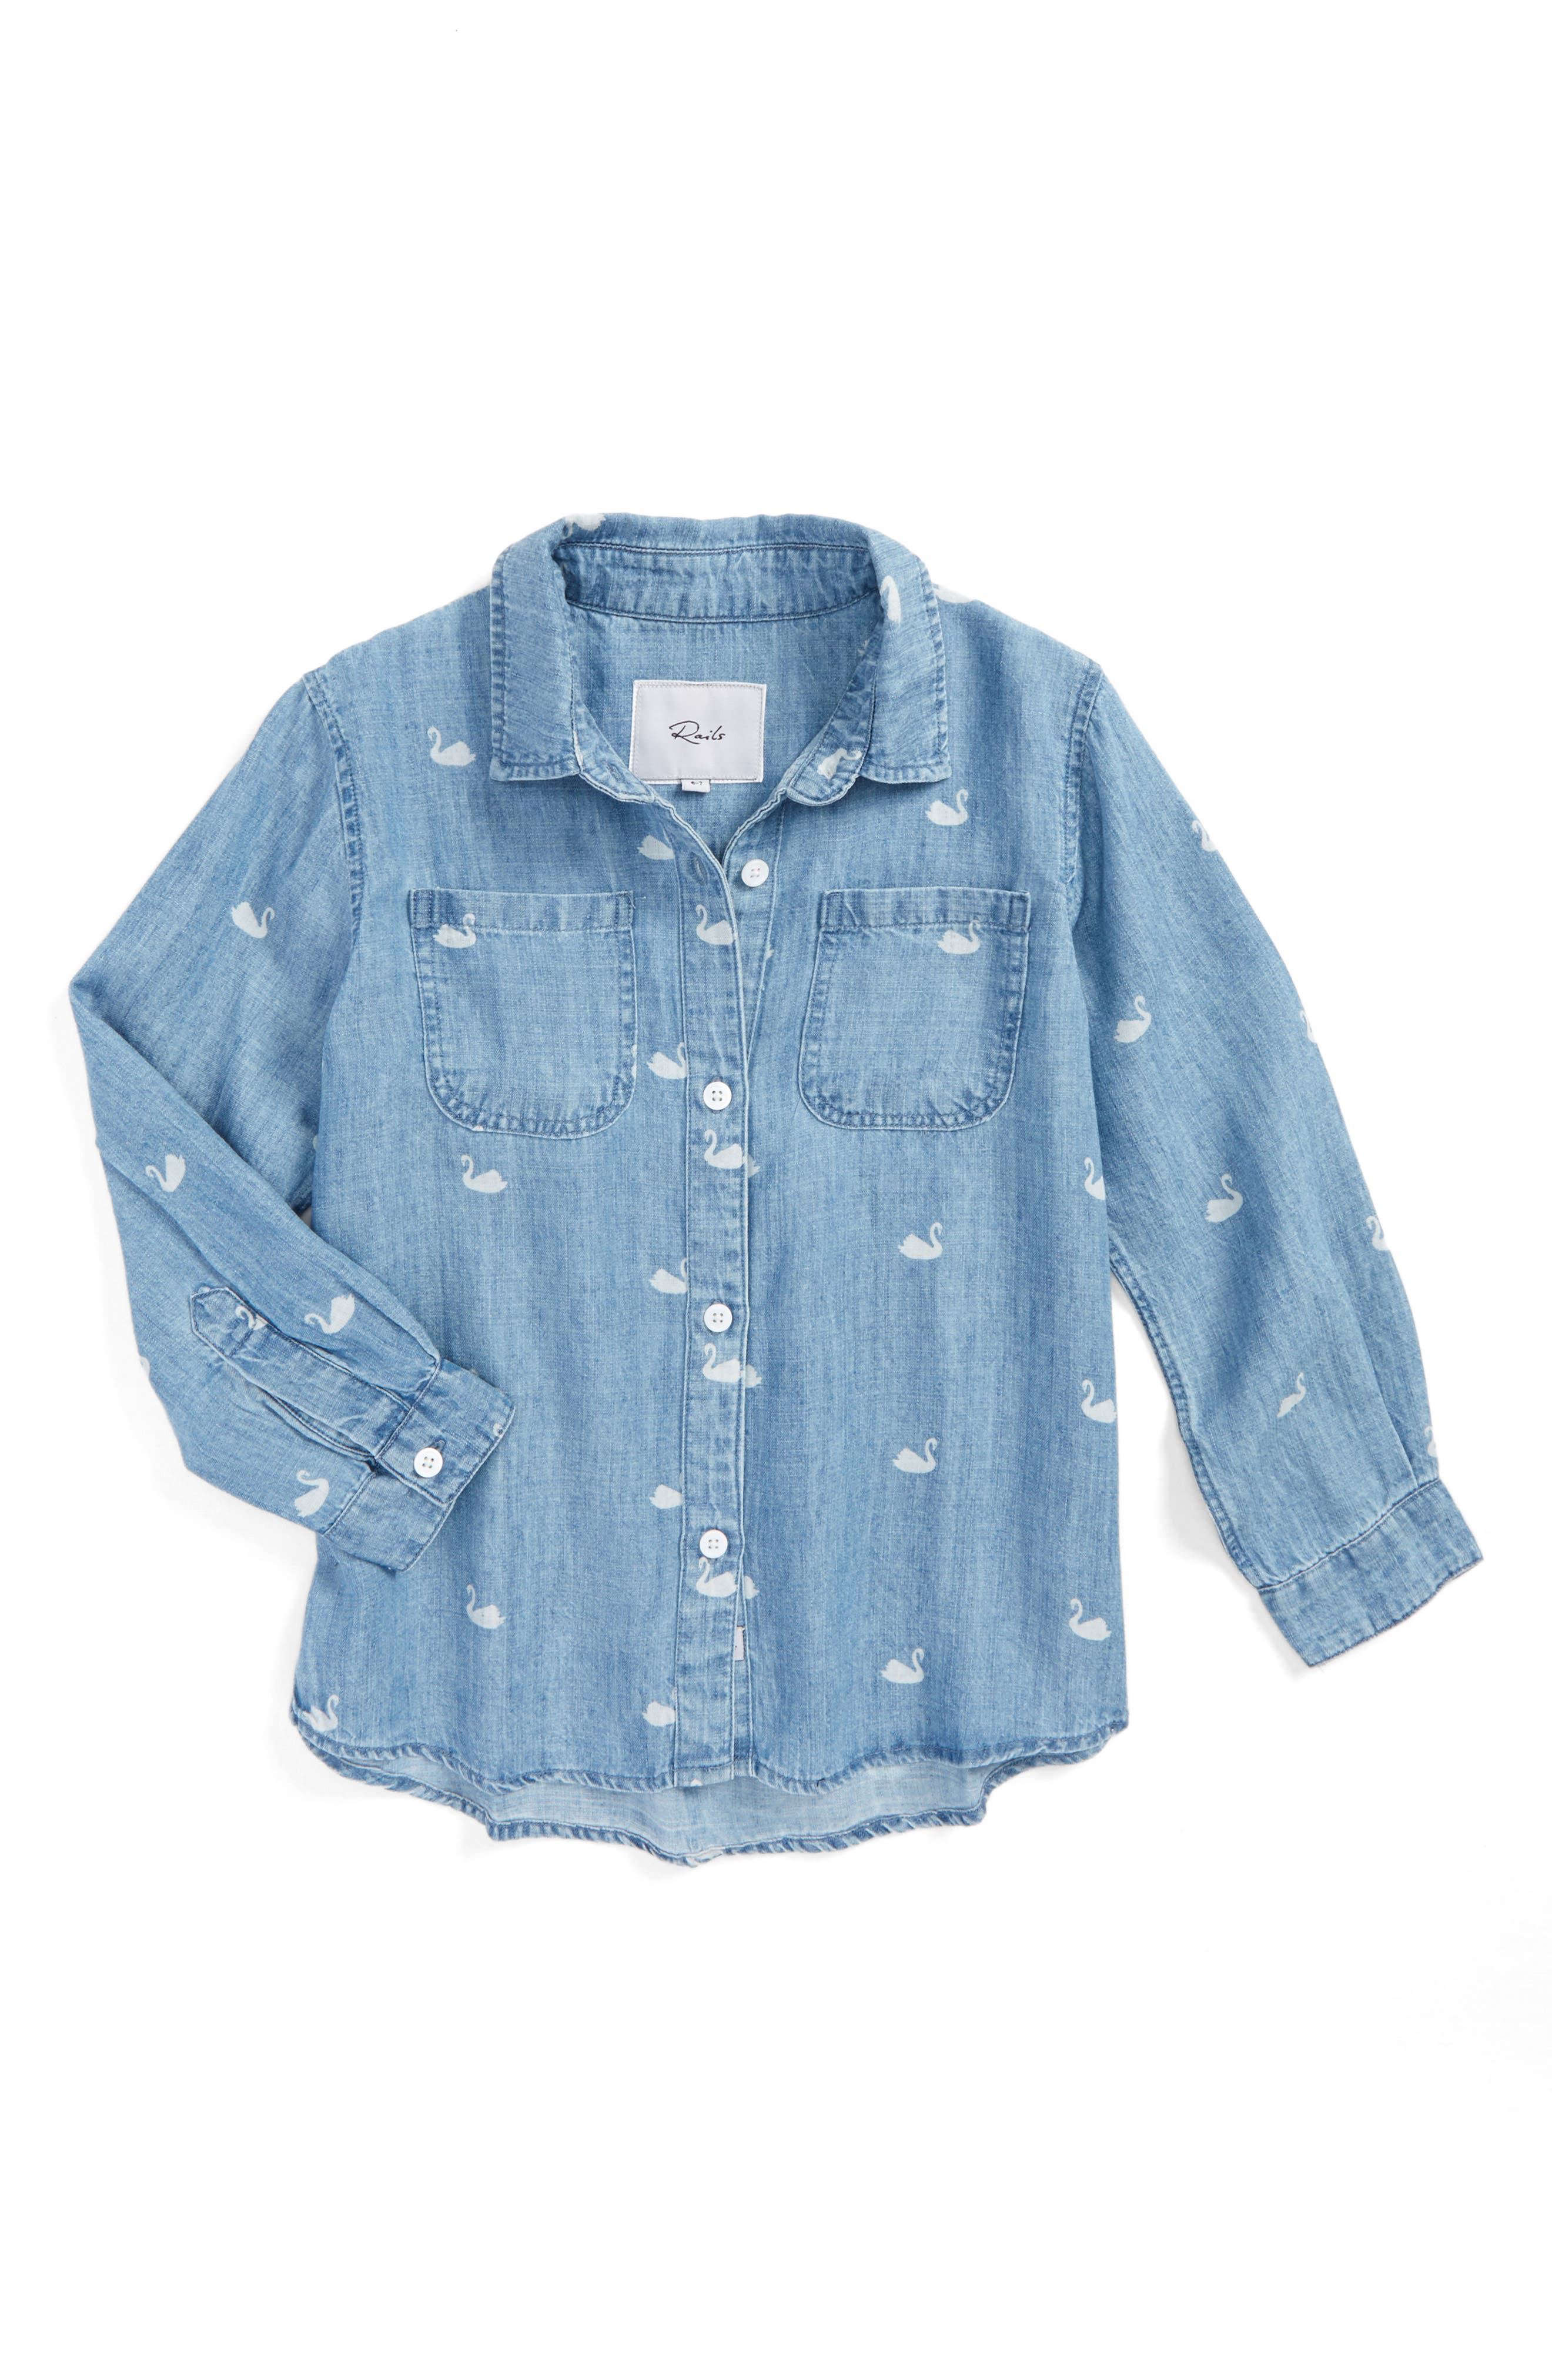 Alternate Image 1 Selected - Rails Carter Swan Print Chambray Button Front Shirt (Toddler Girls, Little Girls & Big Girls)